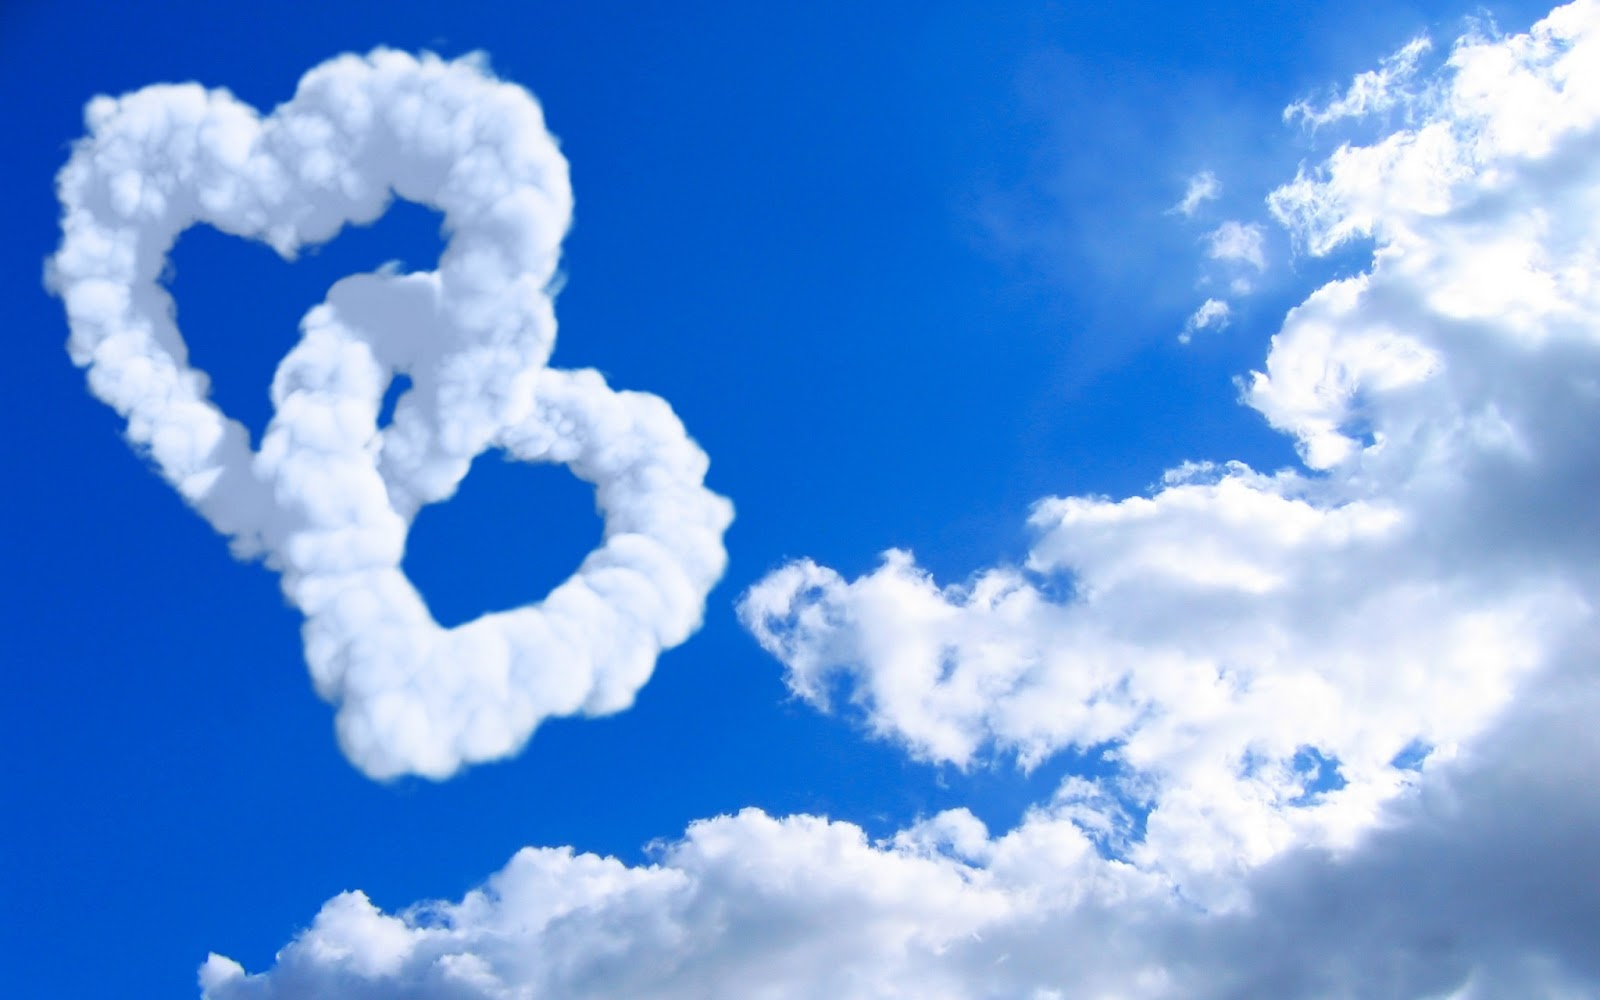 Love Feel Wallpaper Desktop : Free Wallpaper Dekstop: 3d love with clouds wallpaper, wallpaper for desktop